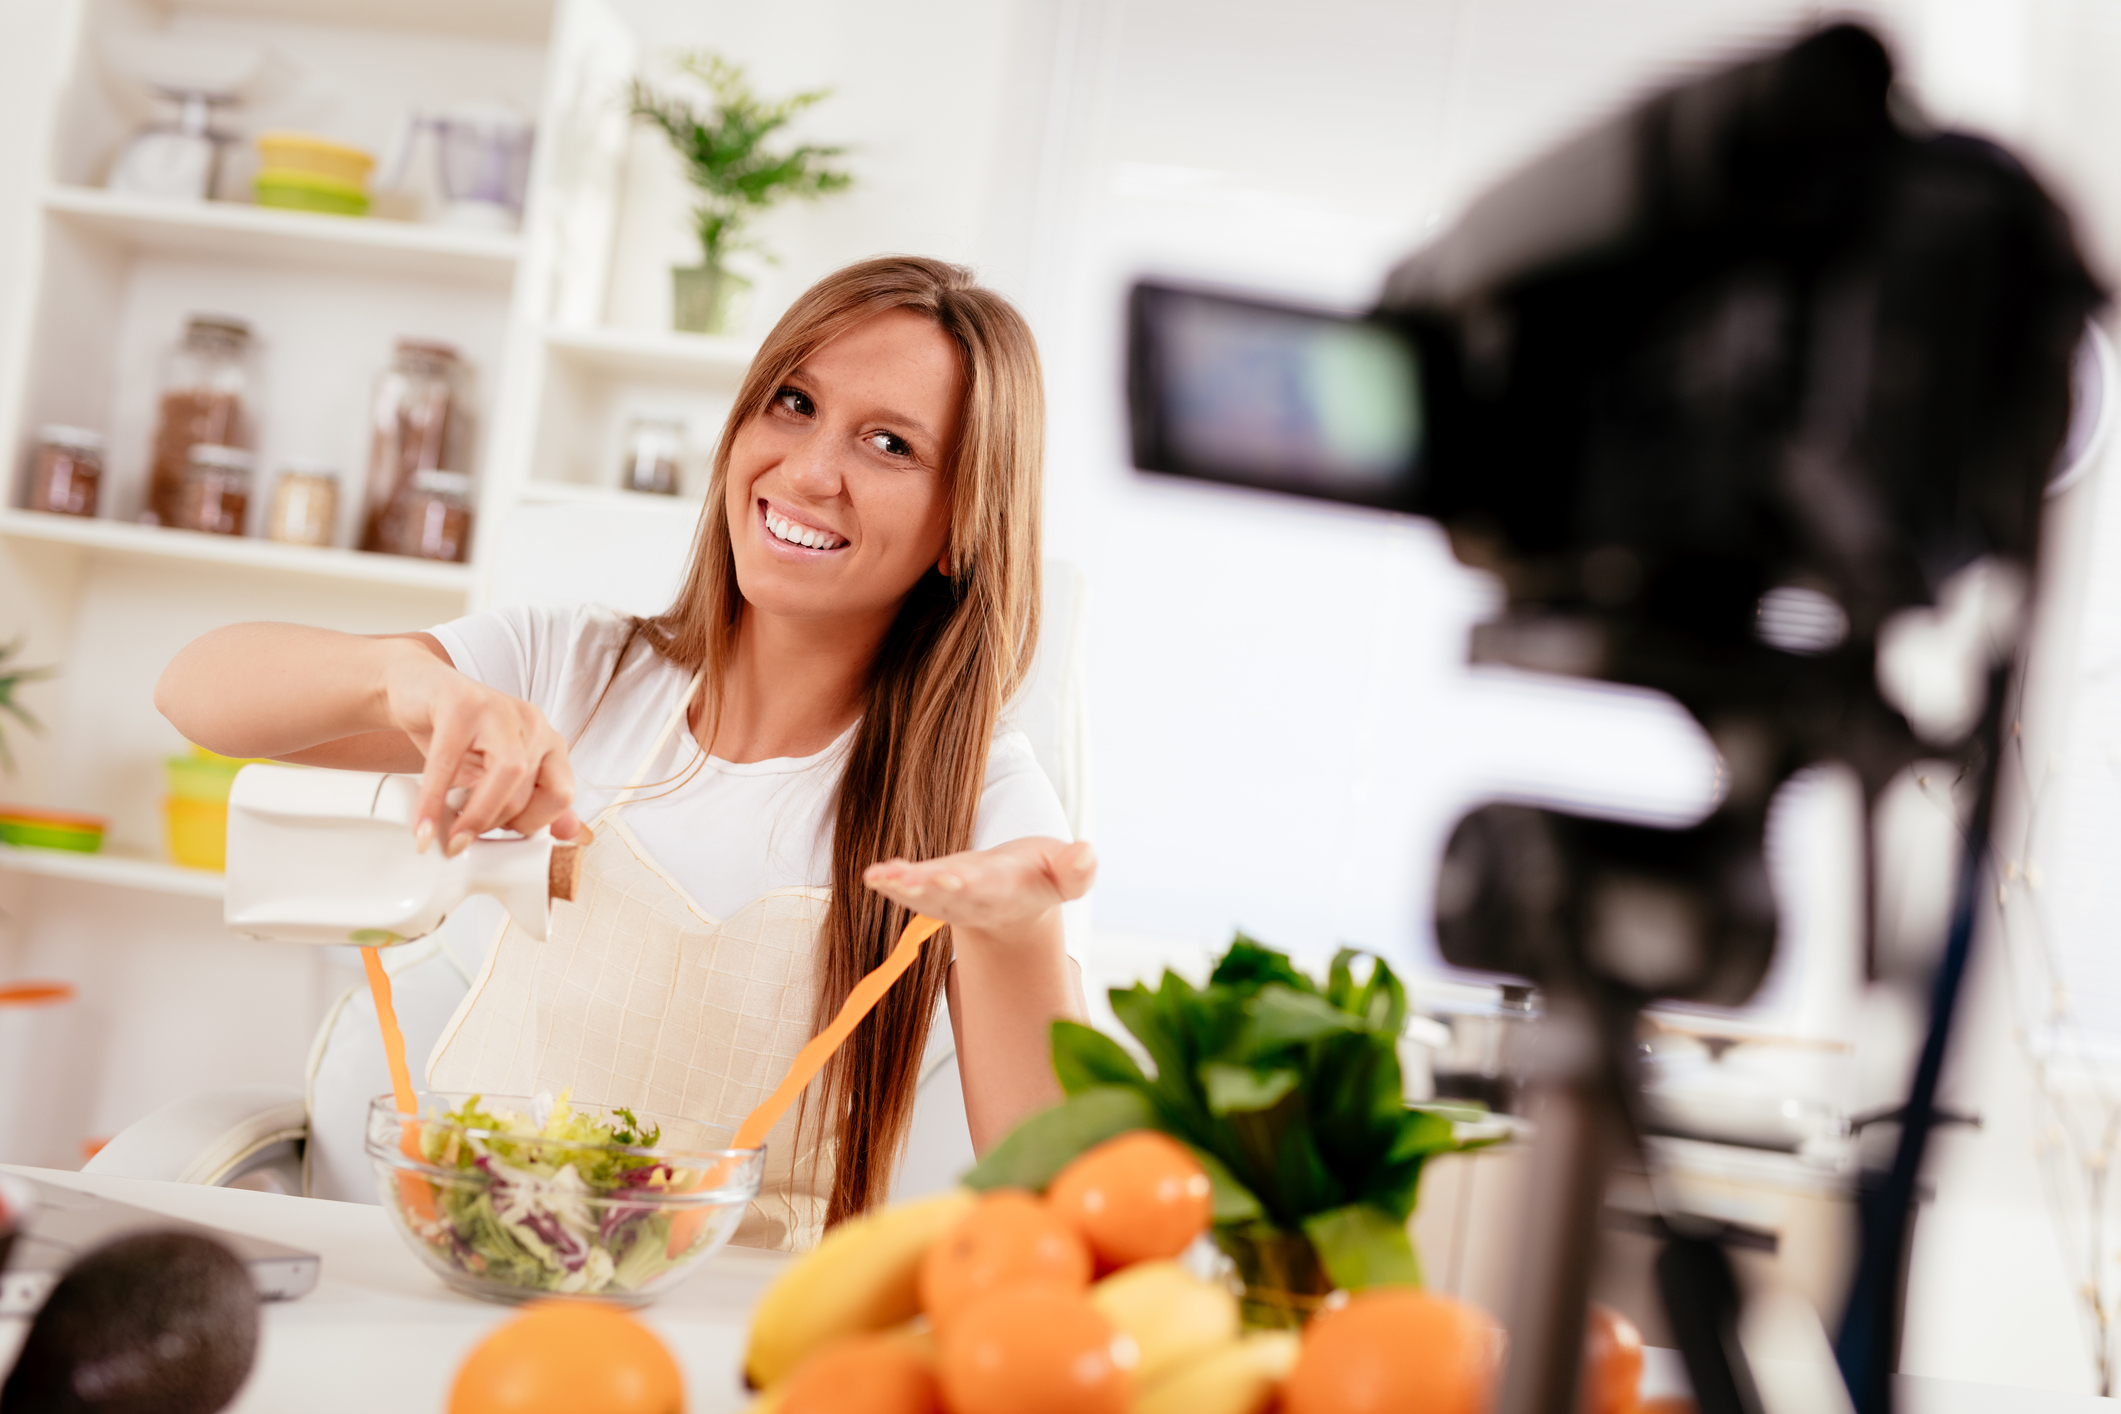 How to Leverage Video Marketing for Authentic Shopper Engagement